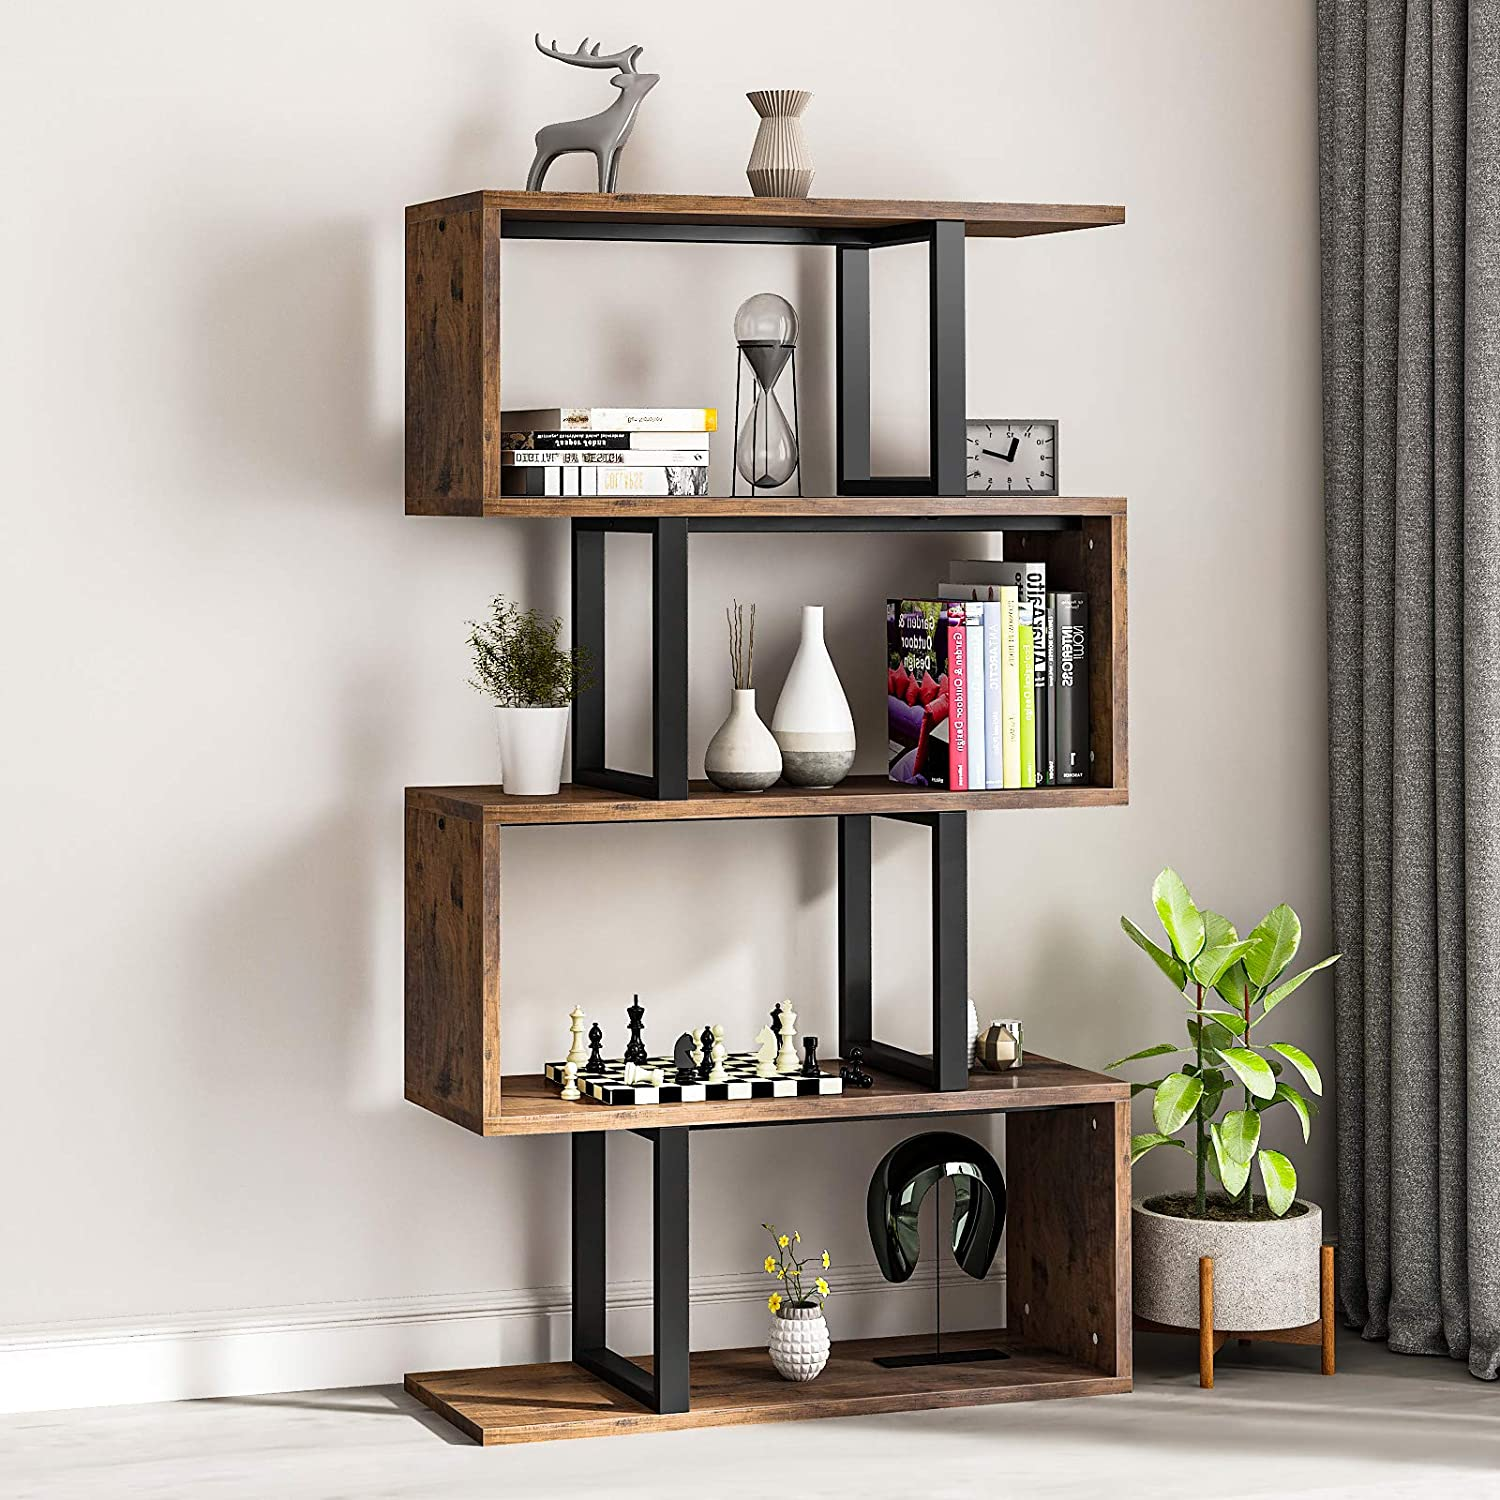 YITAHOME 5-Tier Bookshelf, S-Shaped Z-Shelf Bookshelves and Bookcase, Industrial Freestanding Multifunctional Decorative Storage Shelving for Living Room Home Office, Retro Brown